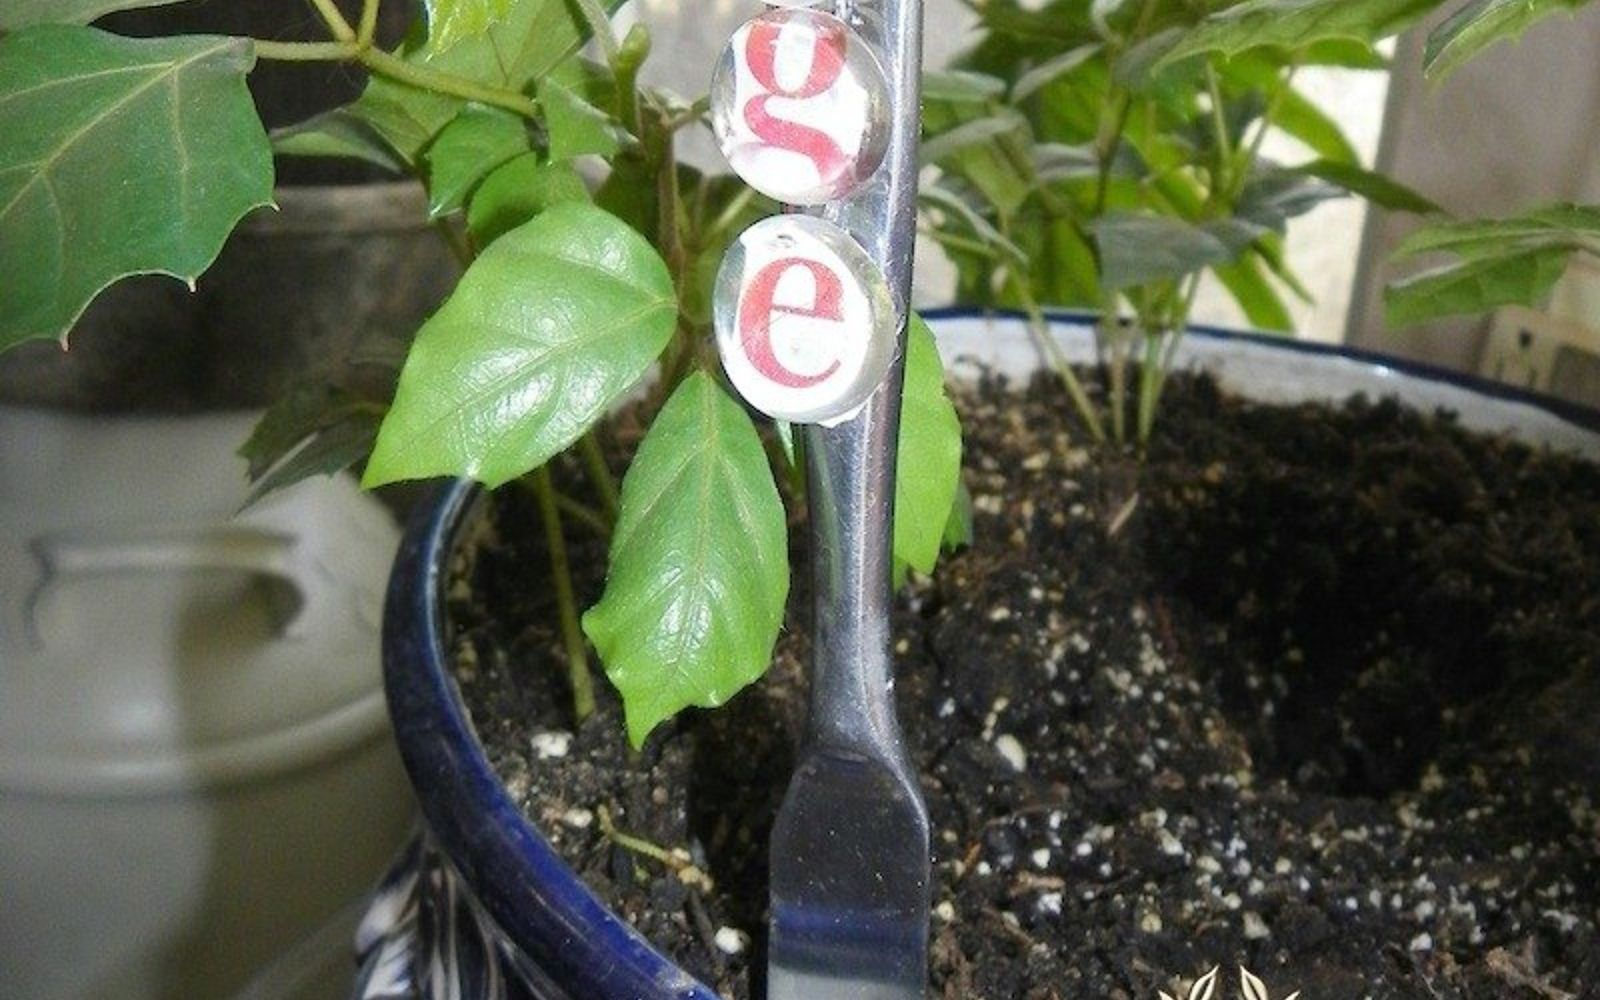 s 12 adorable plant markers from your junk drawer, gardening, repurposing upcycling, Scour your drawer for a few glass gems